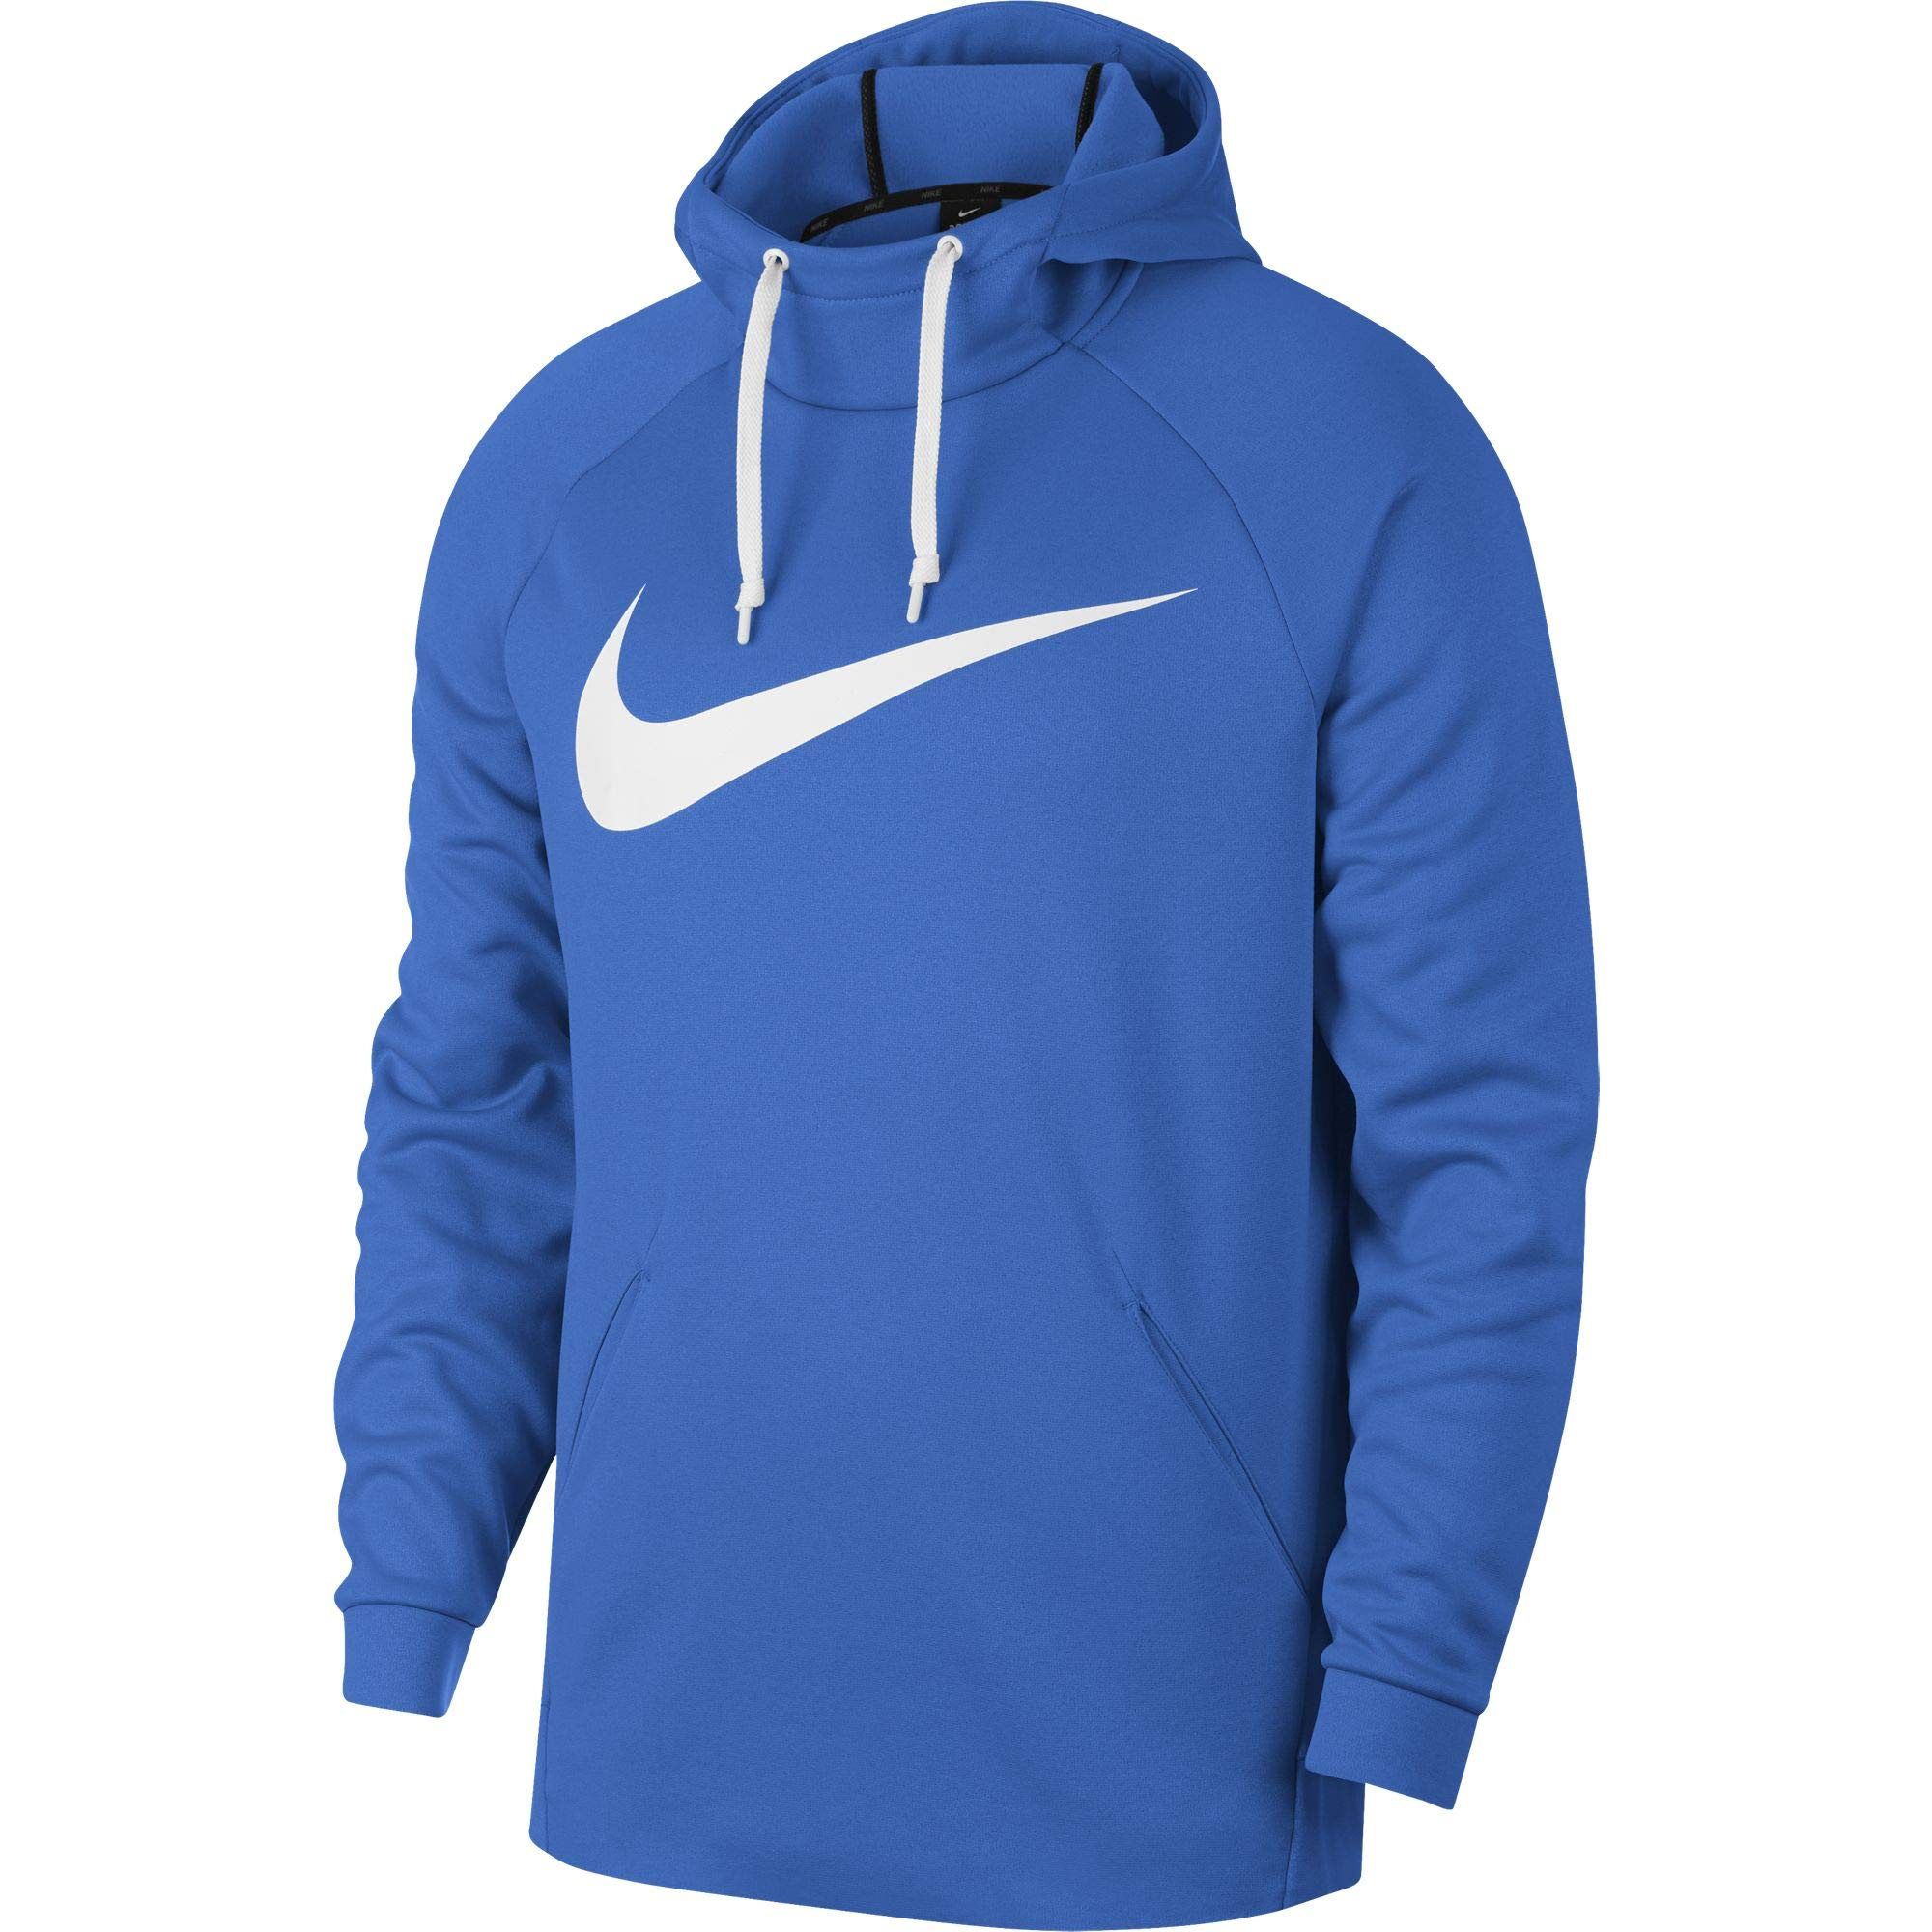 Nike Men's Therma Swoosh Training Hoodie Signal Blue/White Size Small